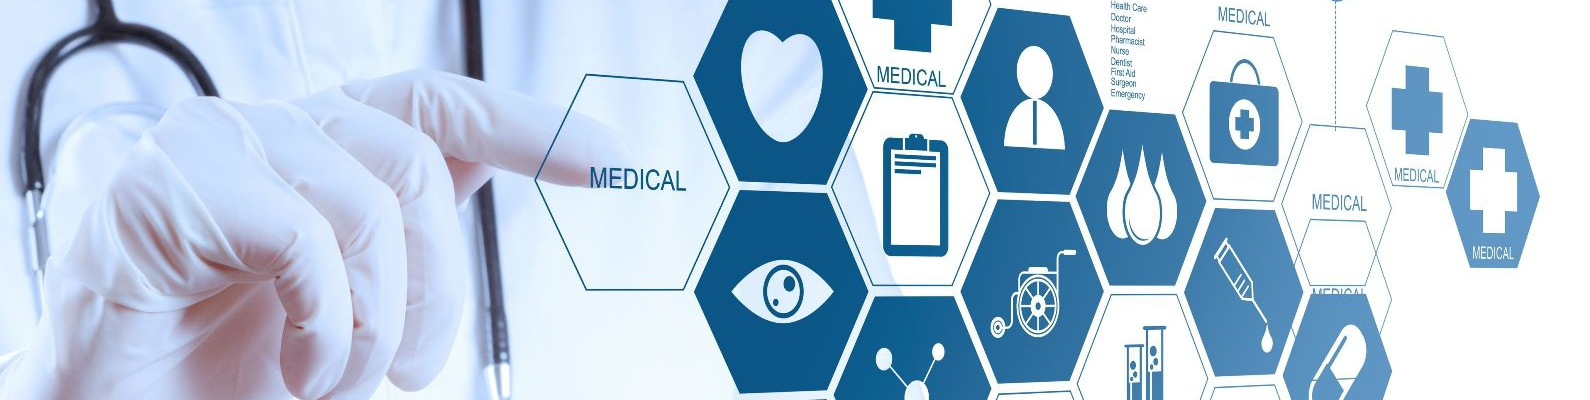 medical information management and office practice Health information management involves maintaining proper patient records by collecting, analyzing, and protecting medical information a medical office manager is responsible for ensuring the seamlessoperations of a medical practice they are also referred to asmedical practice manager or.